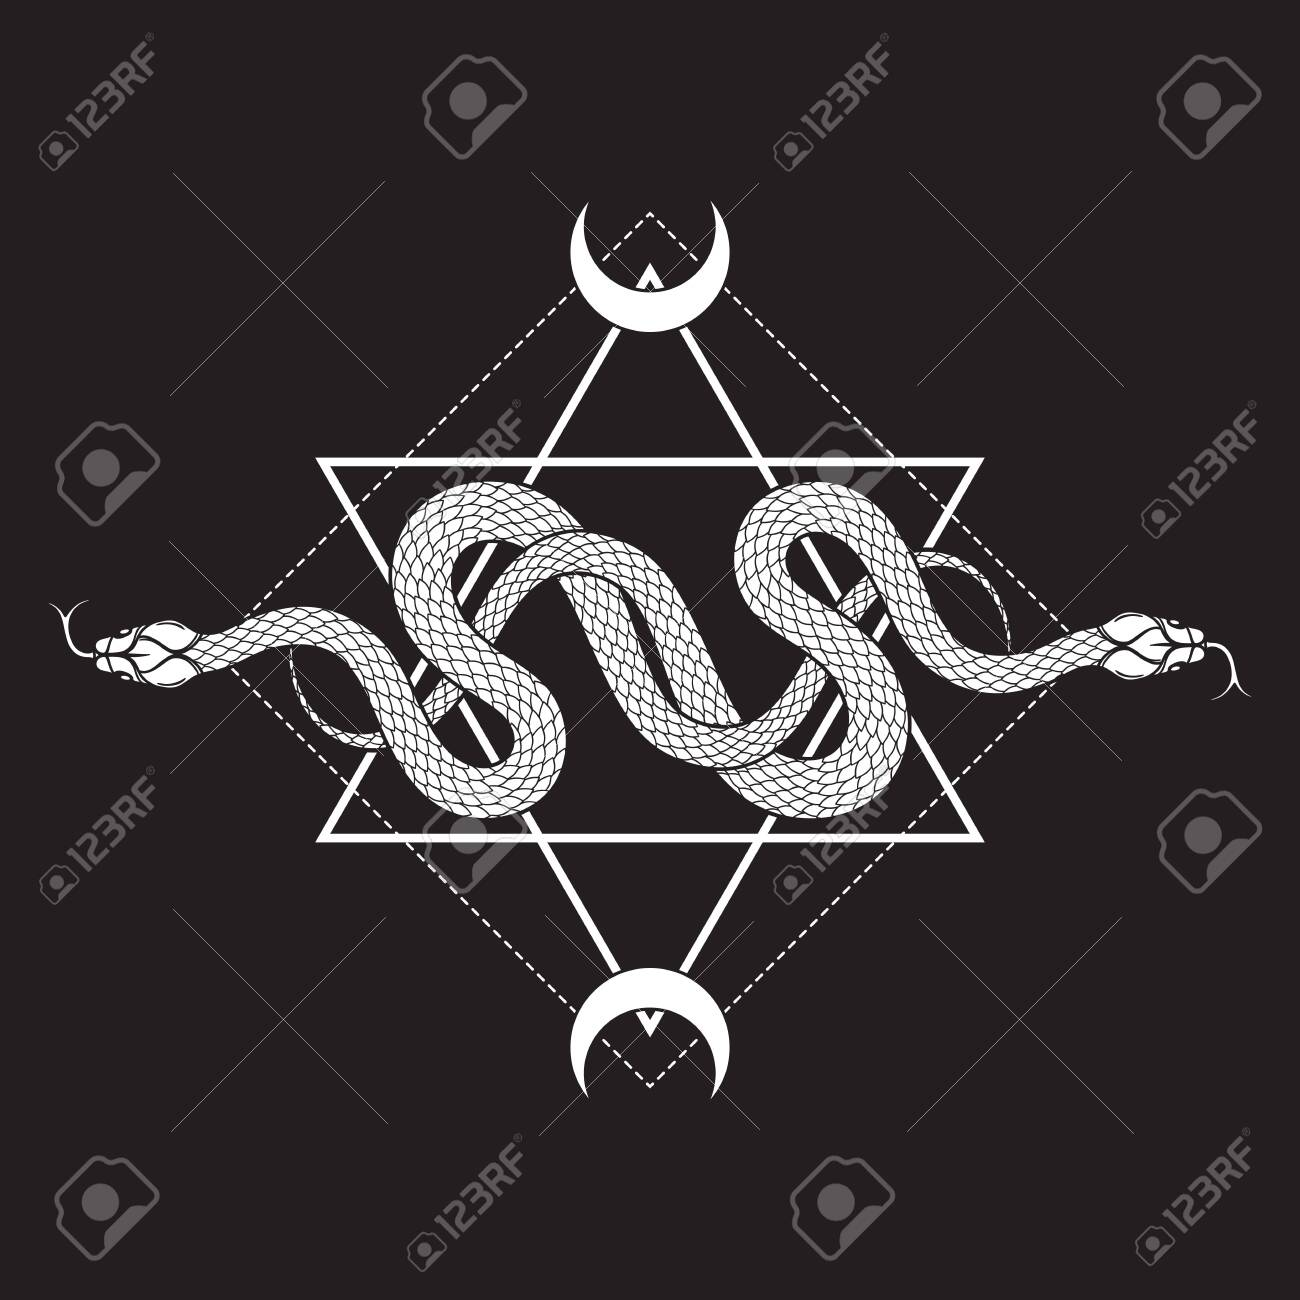 Two serpents over the six pointed star line art boho chic tattoo, poster, tapestry or altar veil print design vector illustration - 140337554